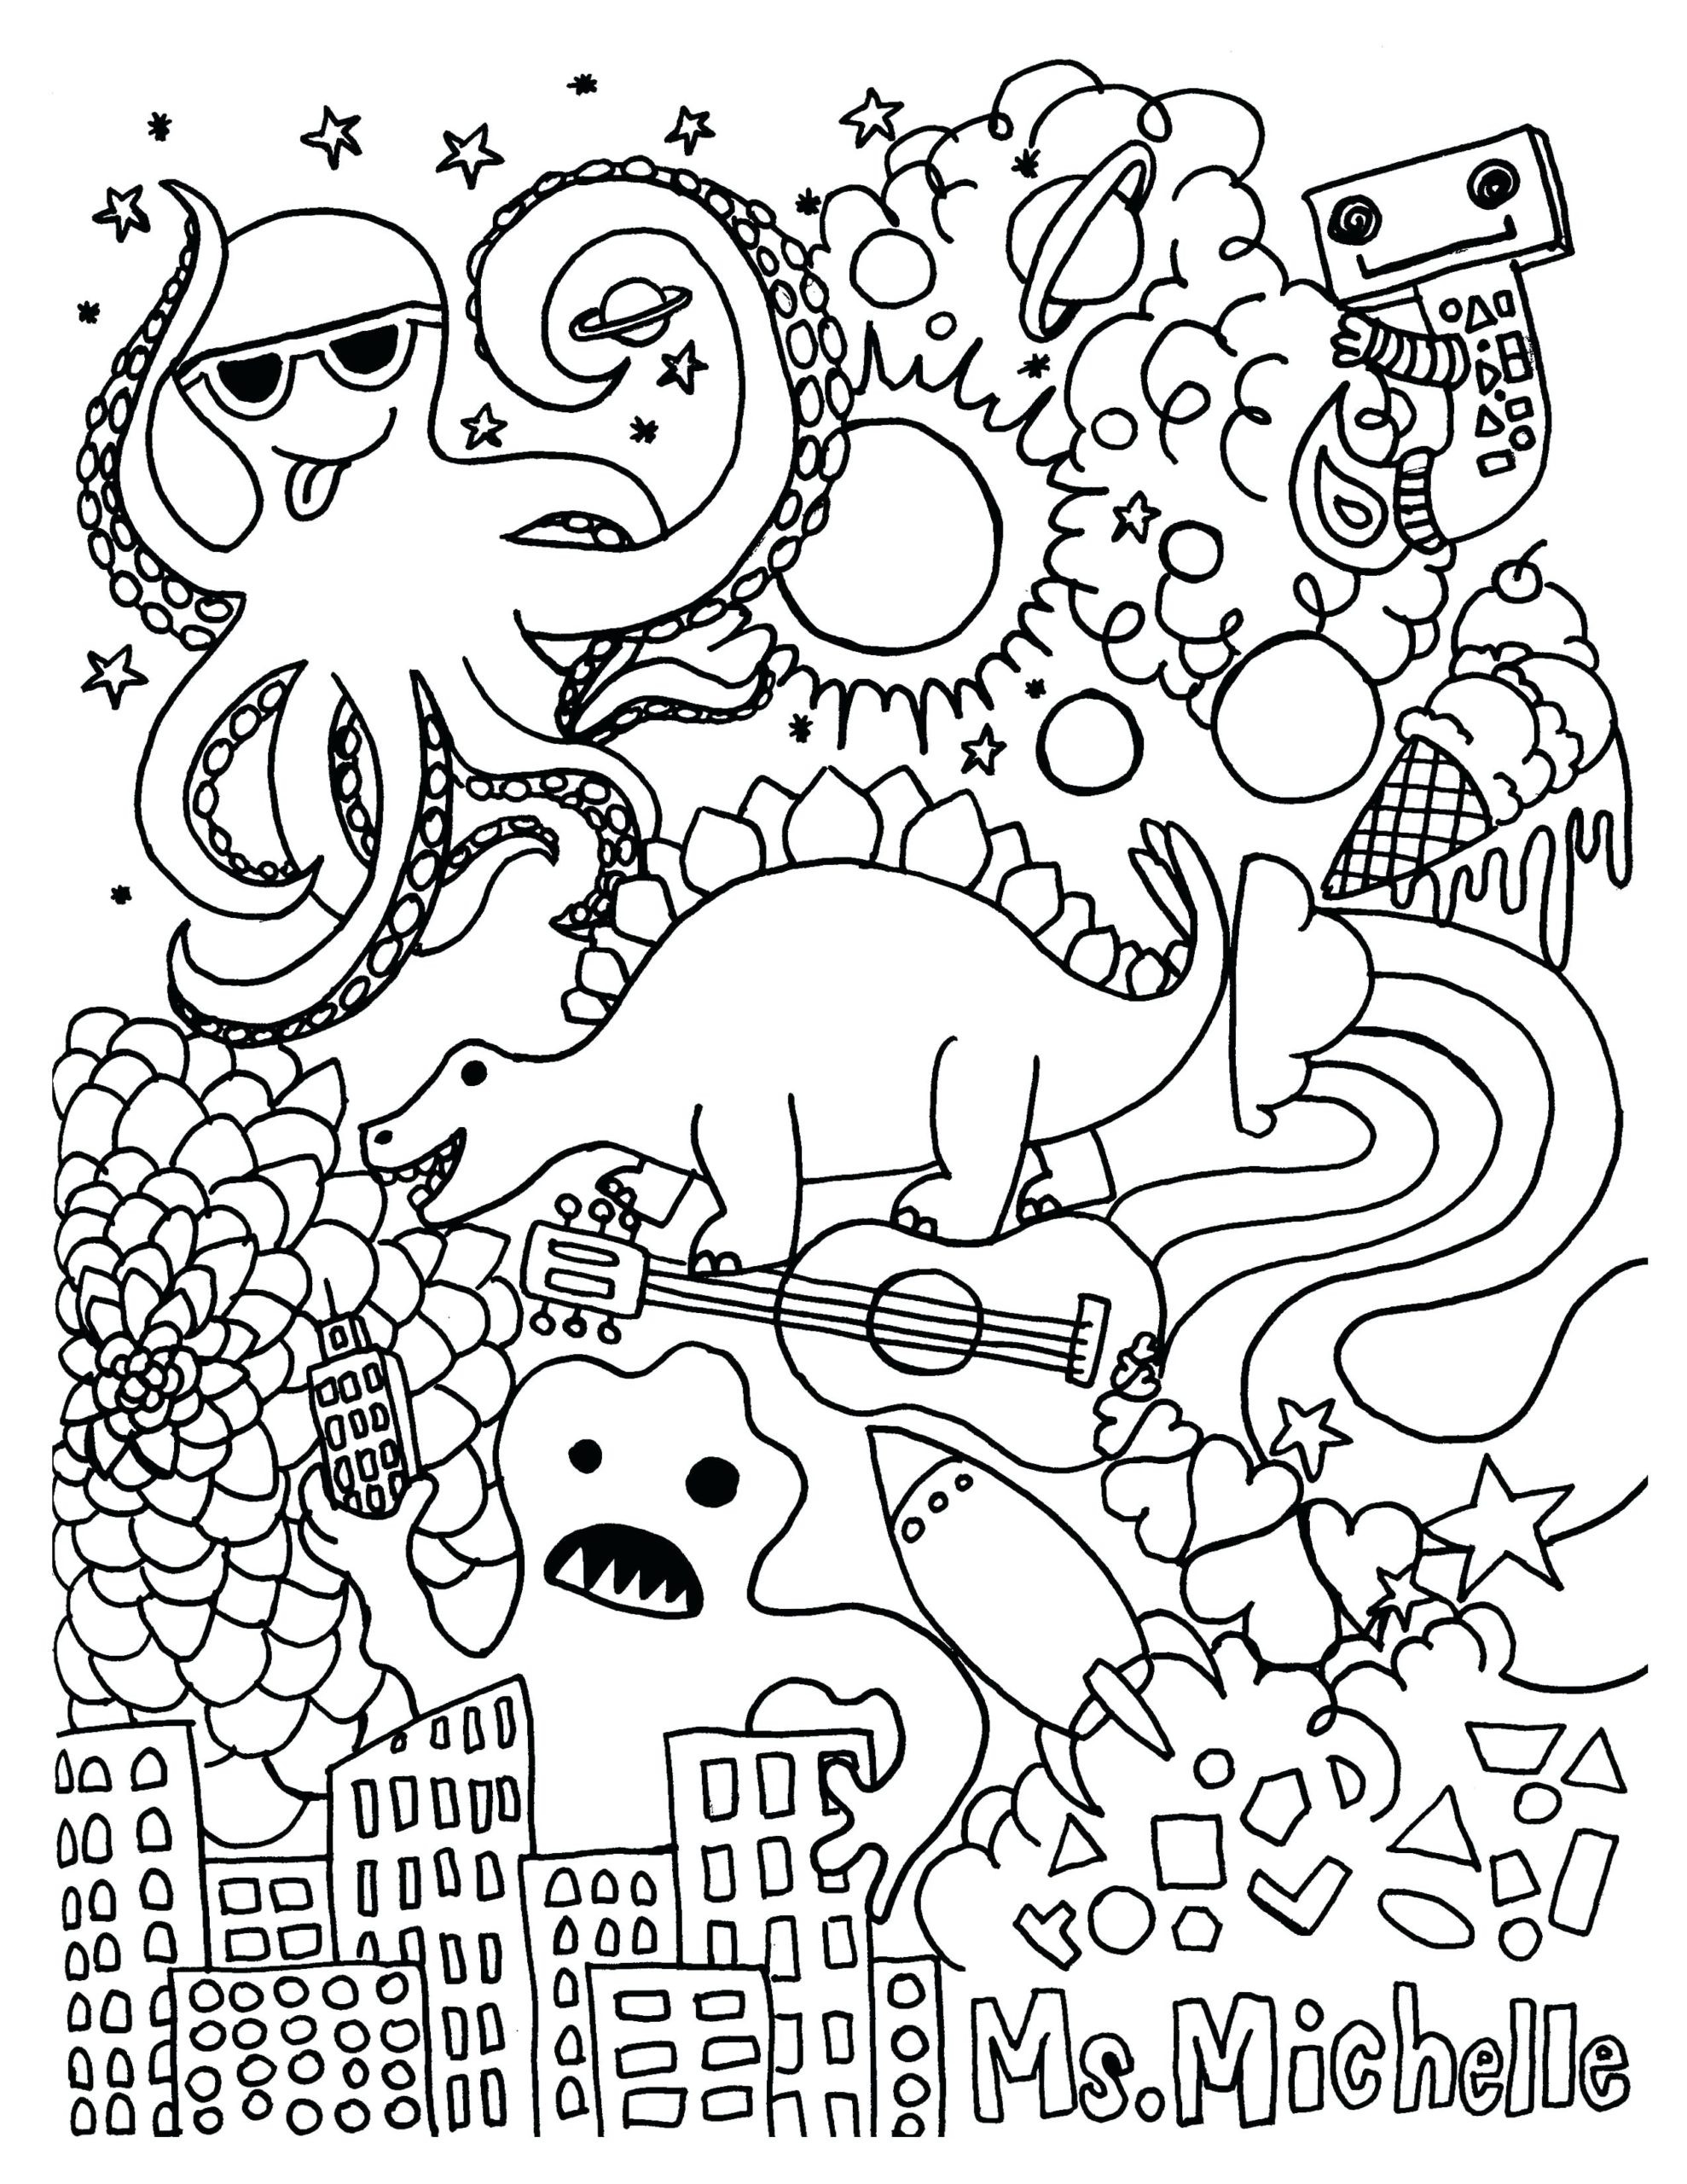 6th Grade Math Puzzles Printable Coloring Book Multiplication Worksheets Amazing Free Third